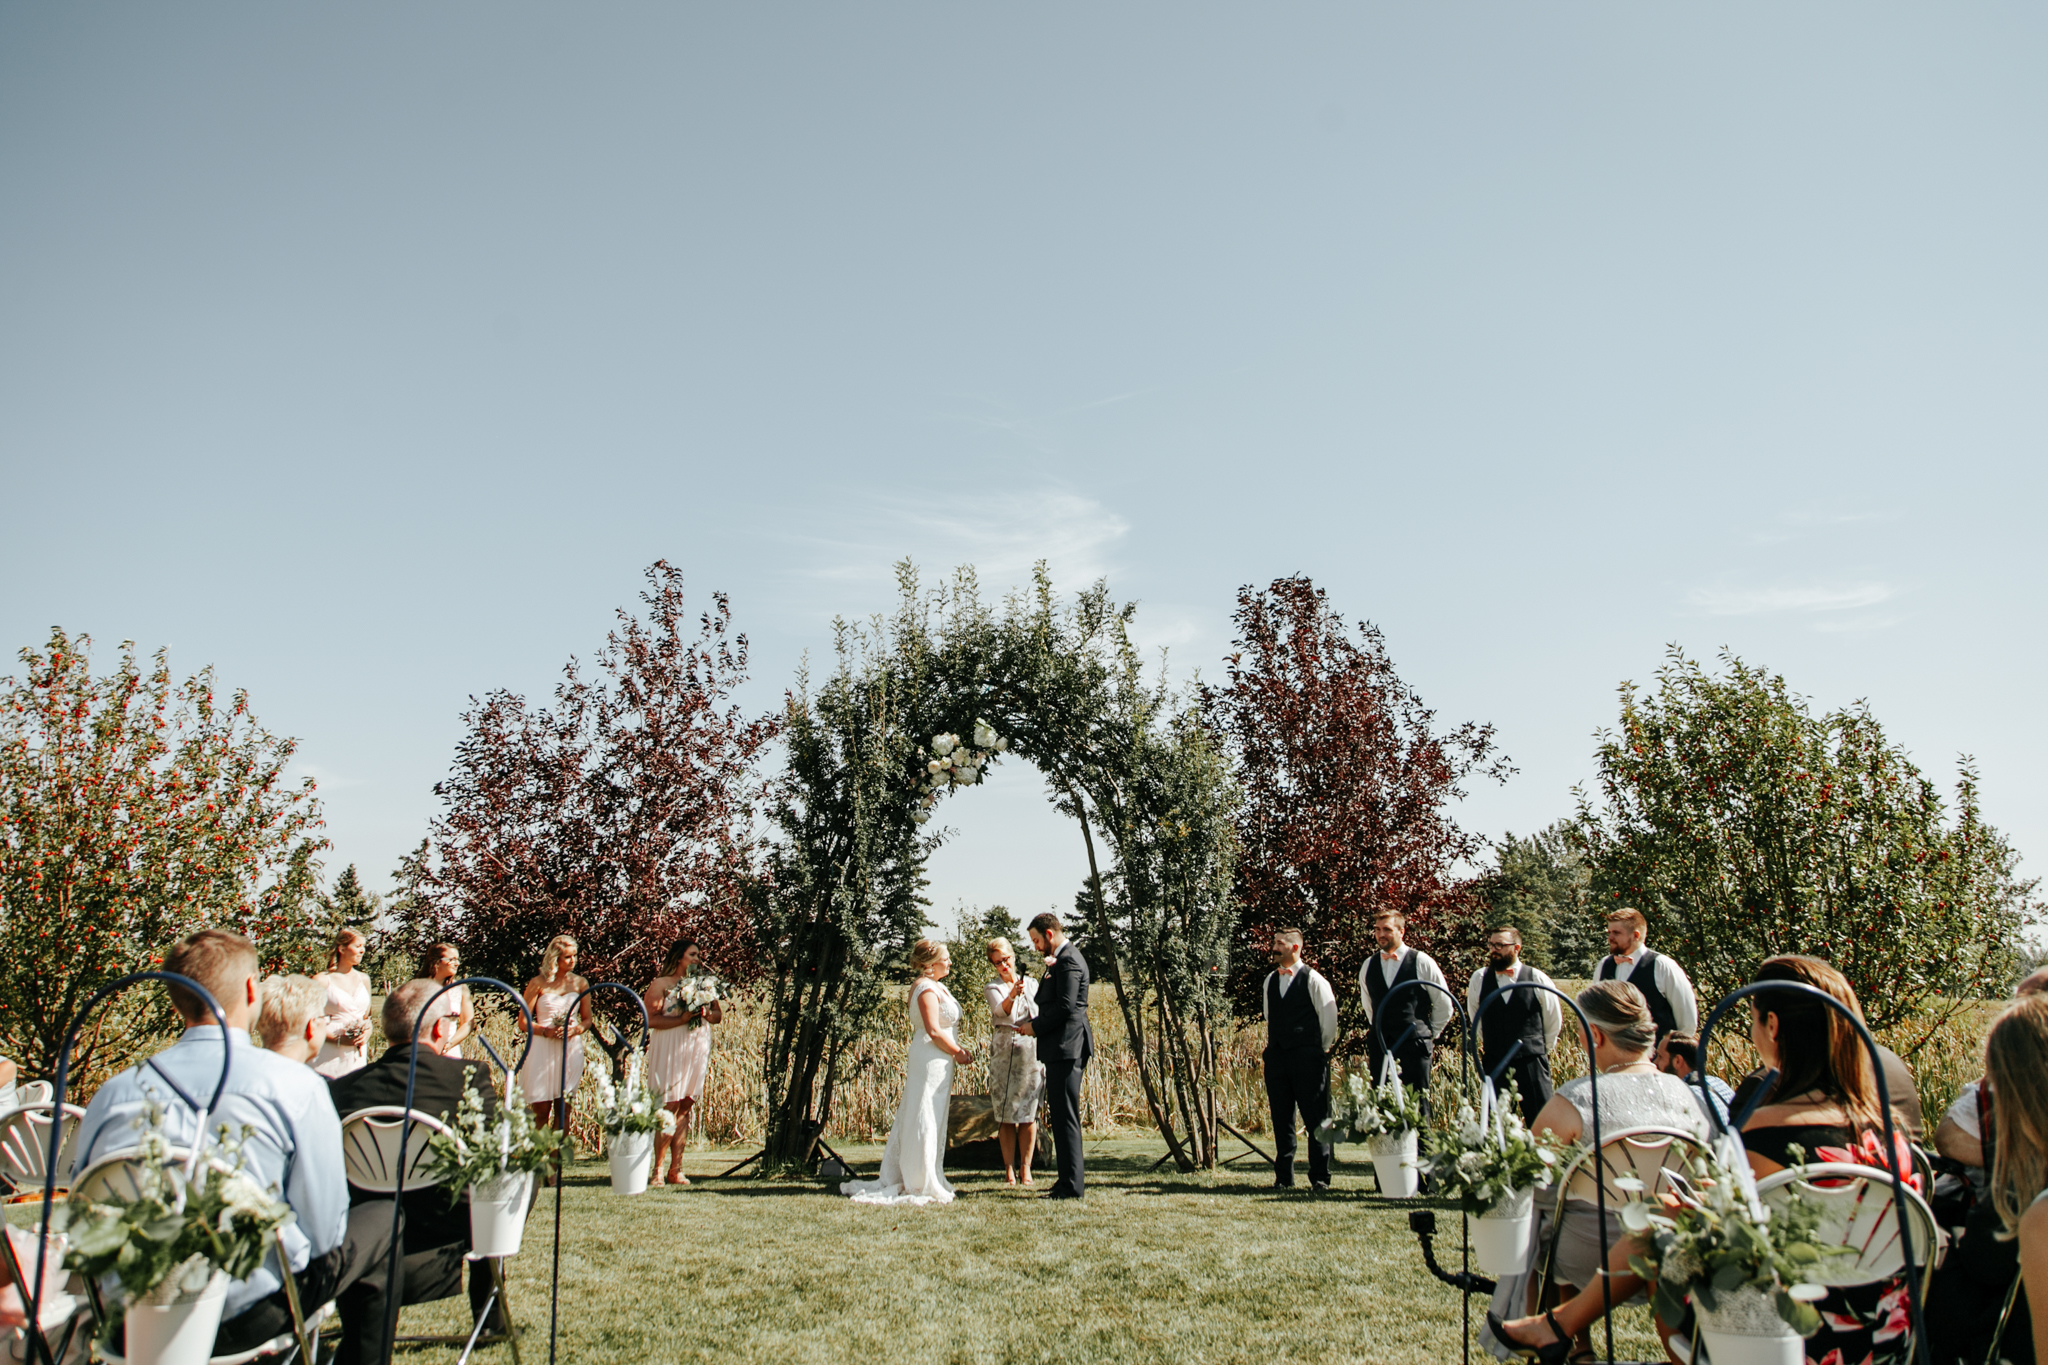 red-deer-wedding-photographer-love-and-be-loved-photography-emily-gab-photo-image-picture-74.jpg